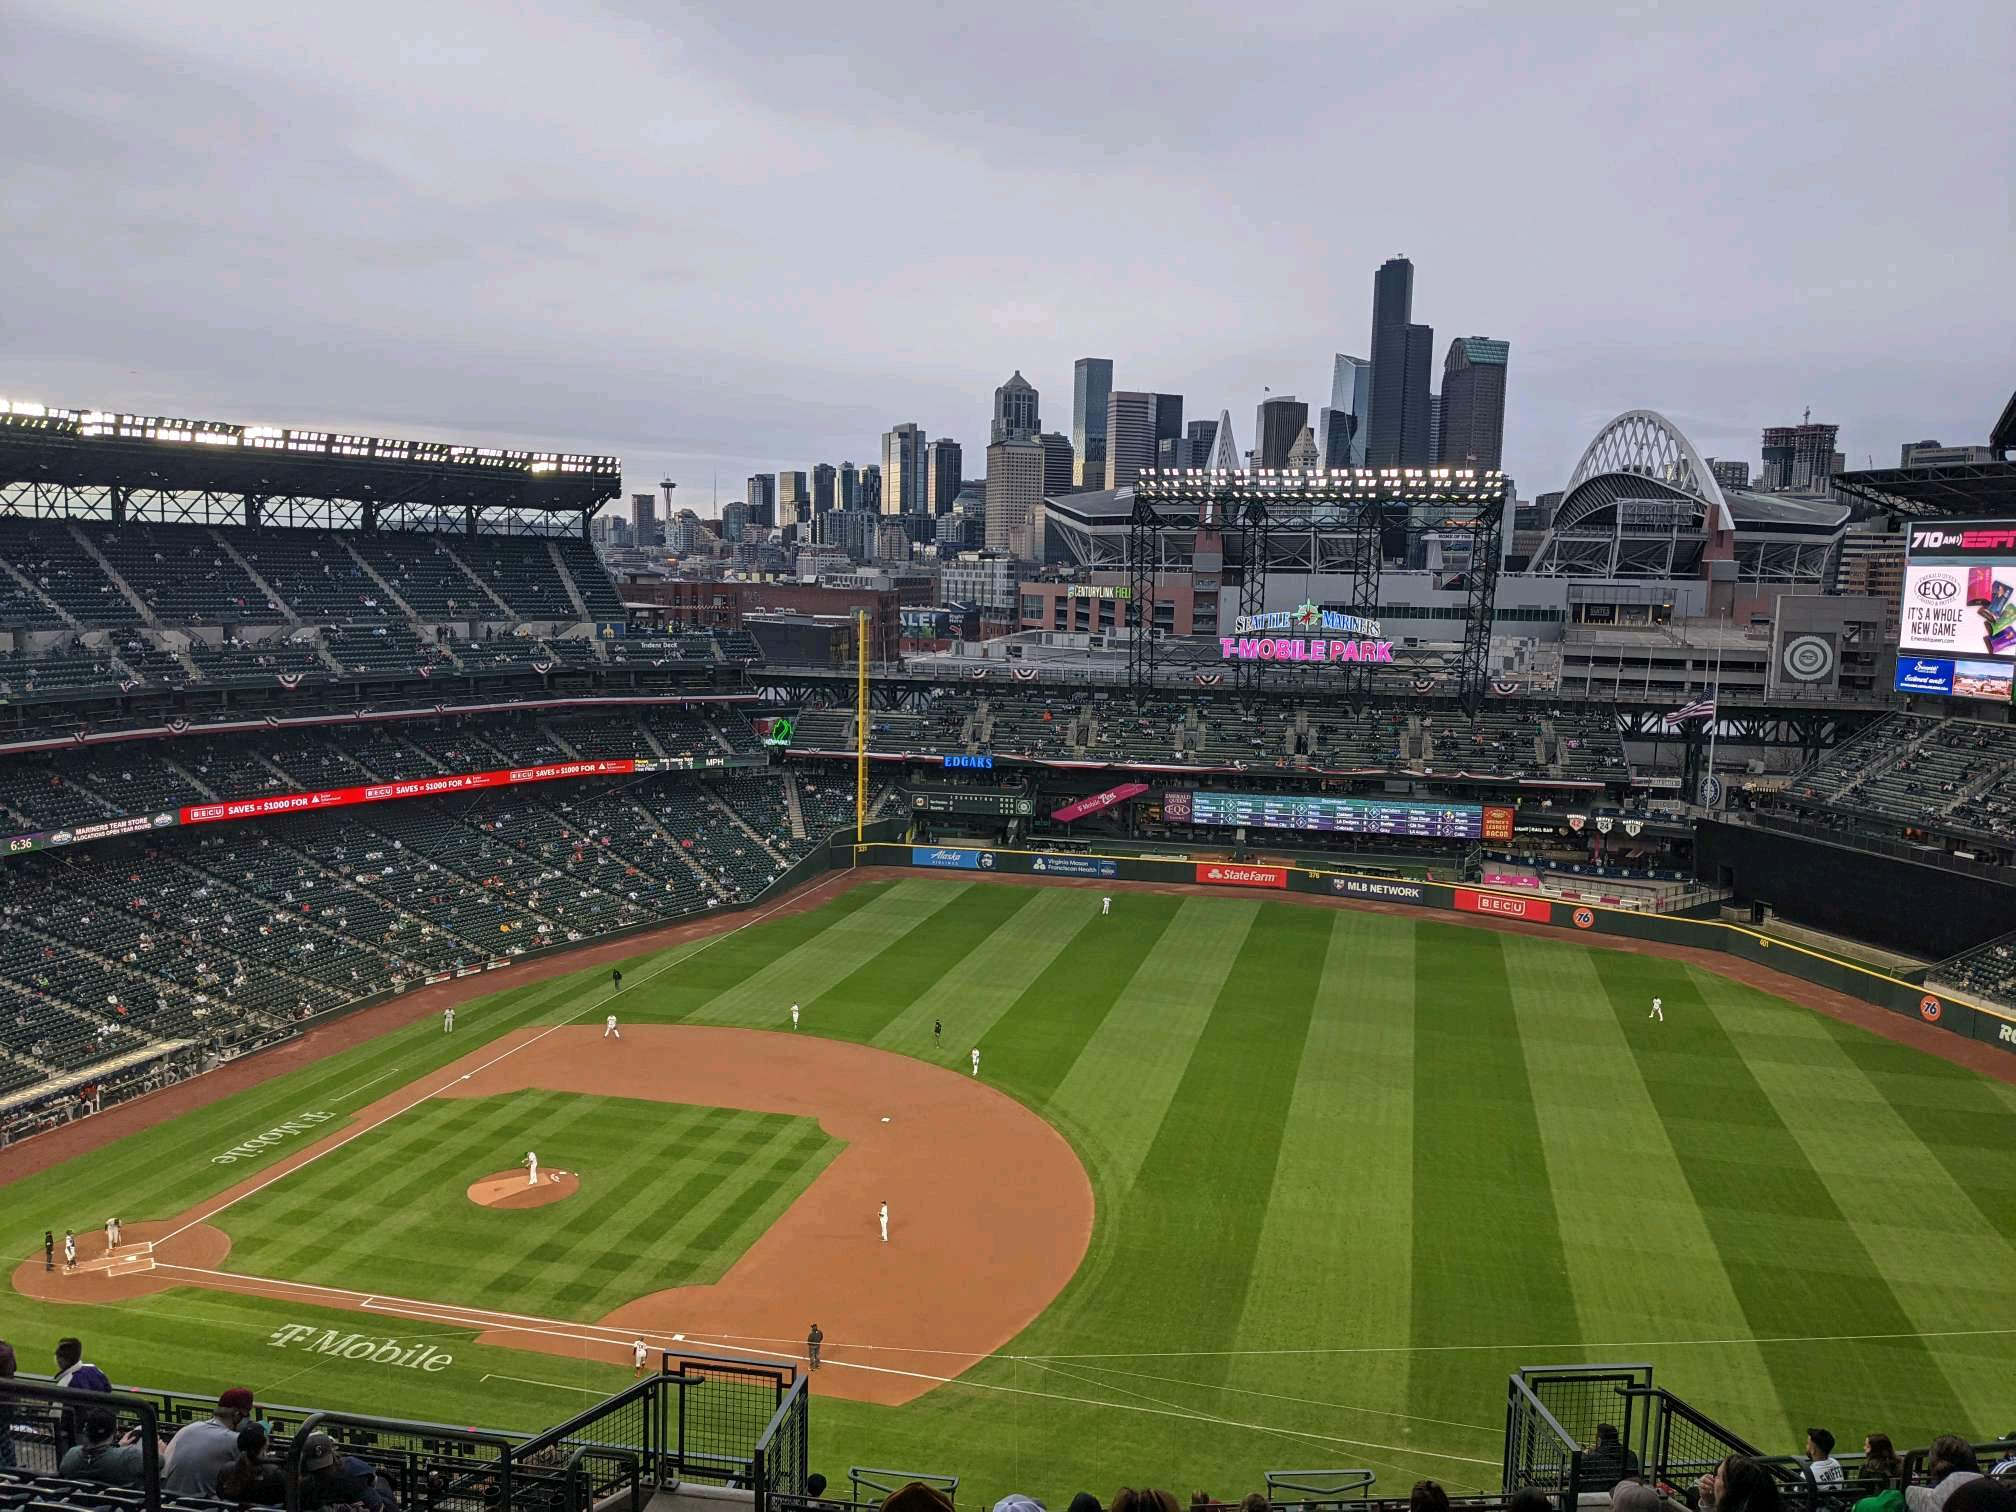 T-Mobile Park Section 320 Row 20 Seat 10